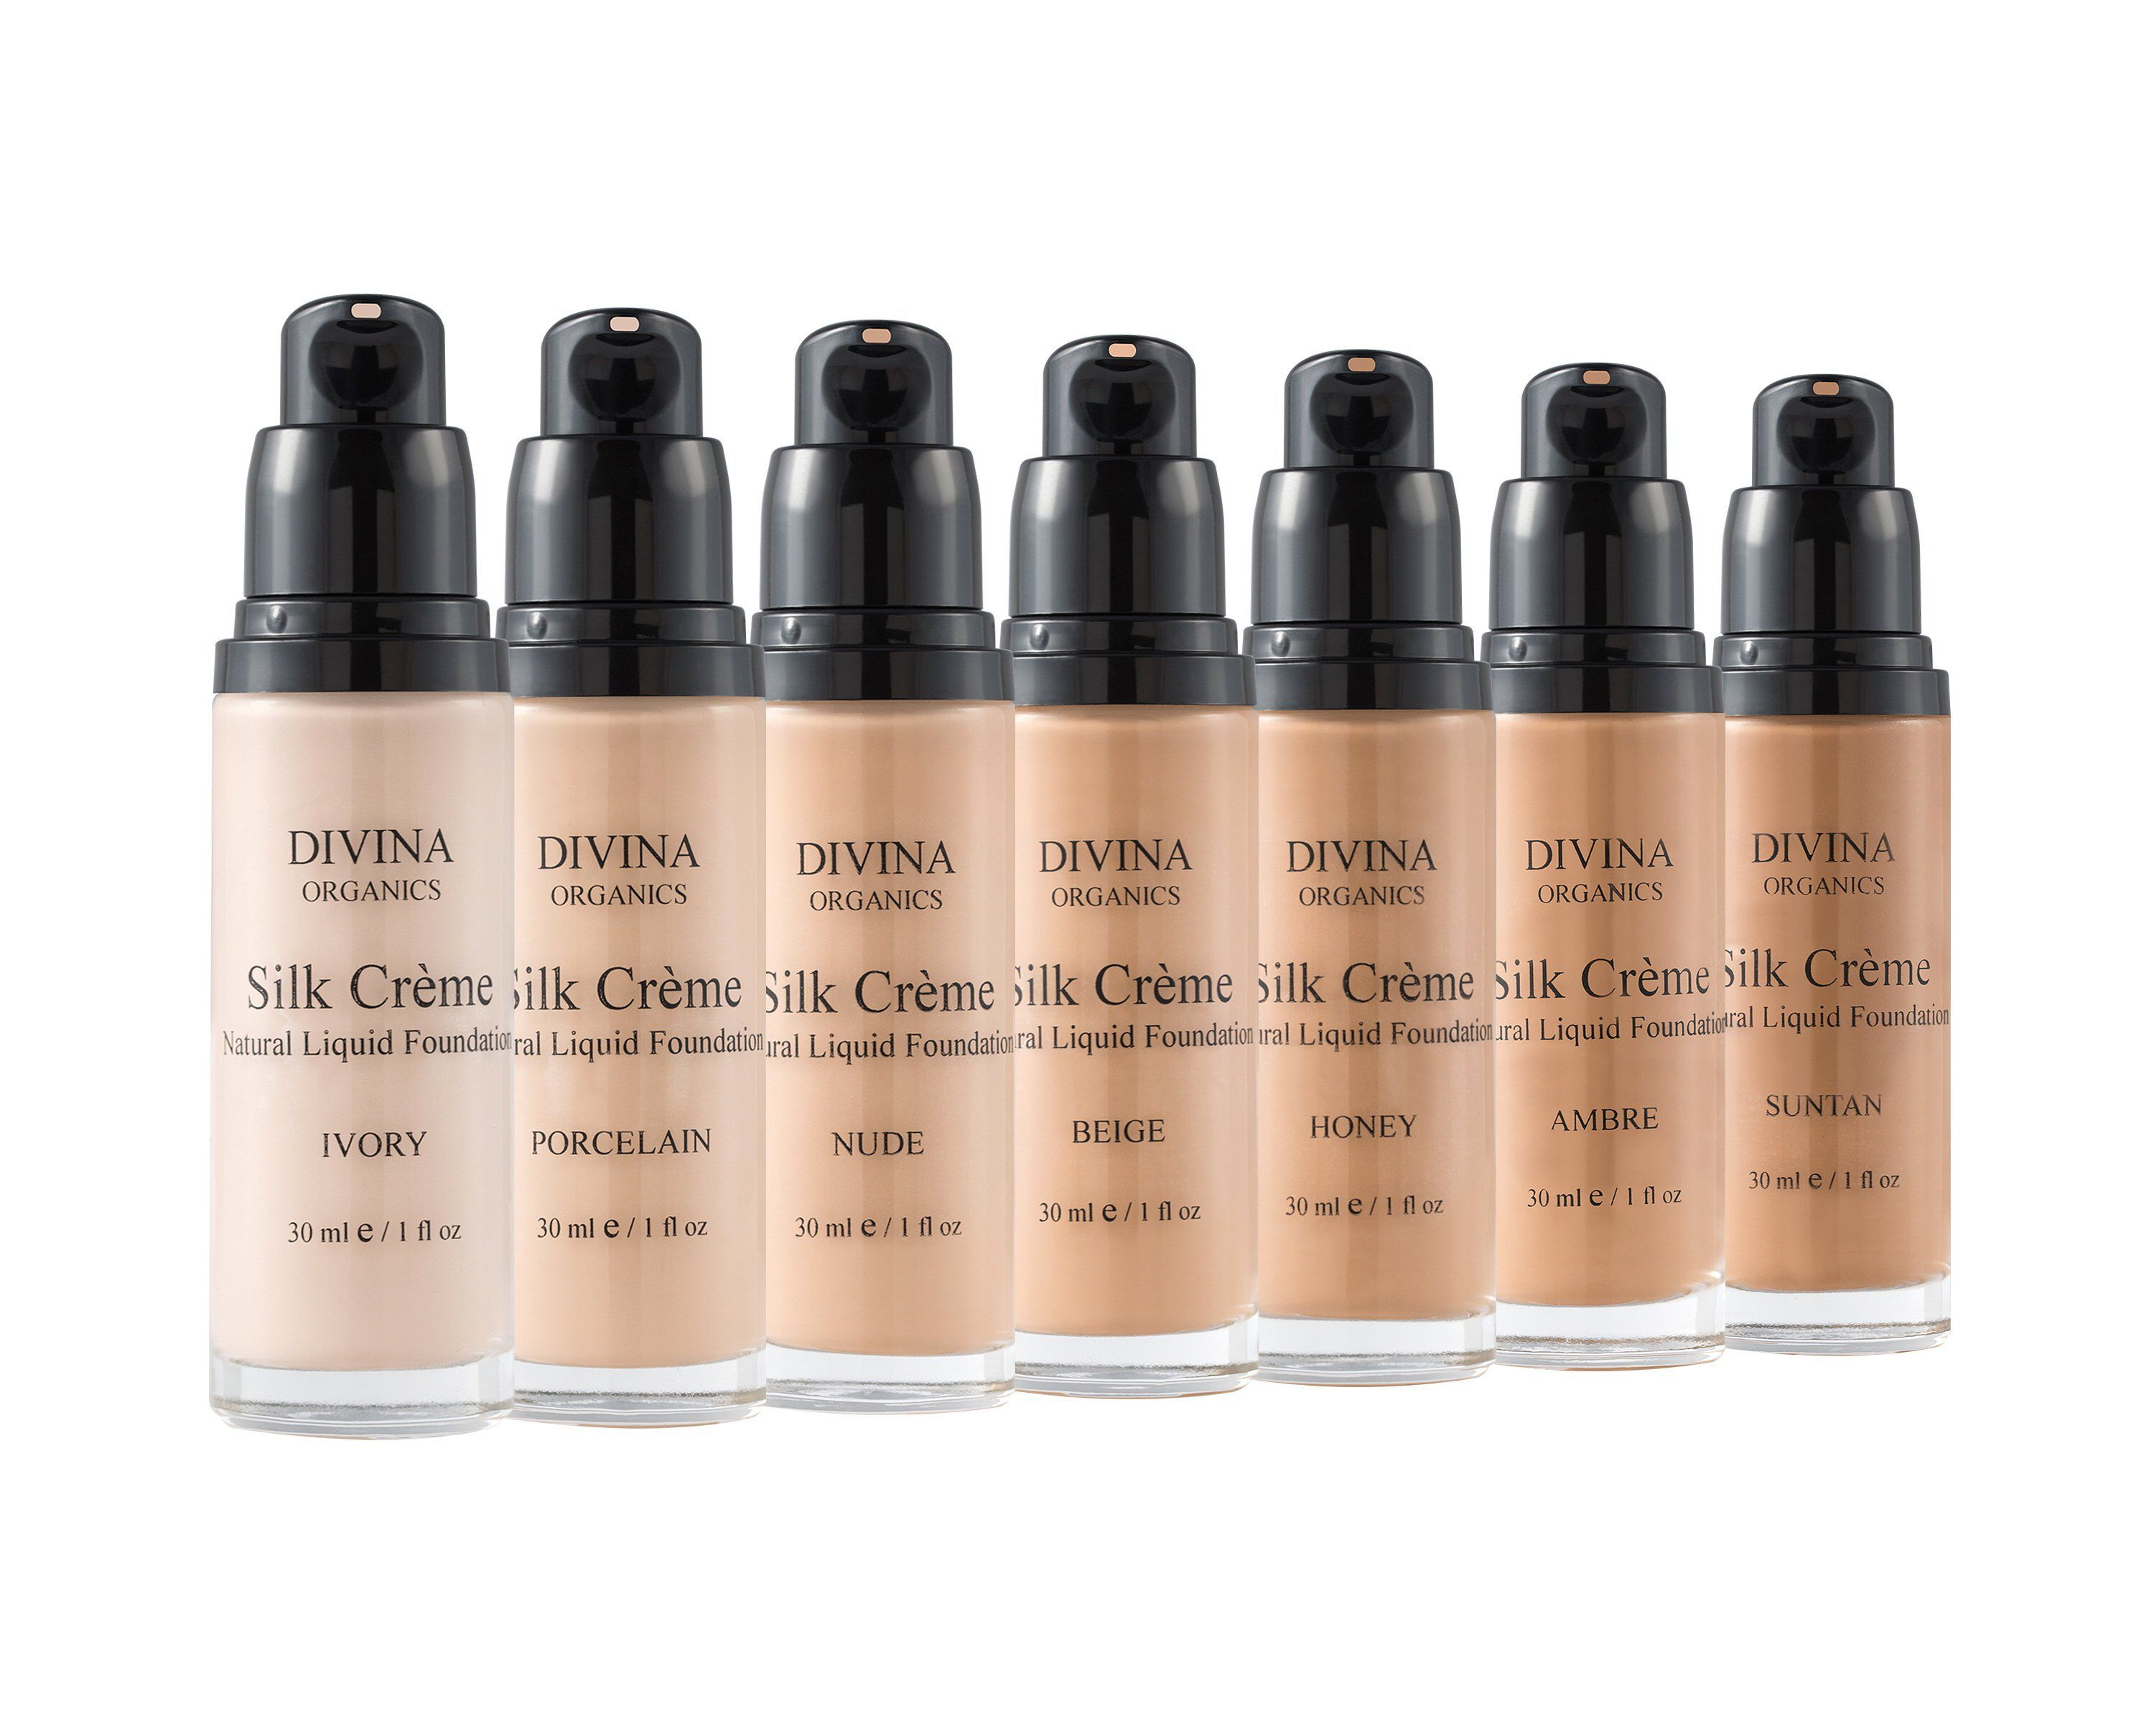 SILK CREME Natural Liquid Foundation, in 7 shades, with